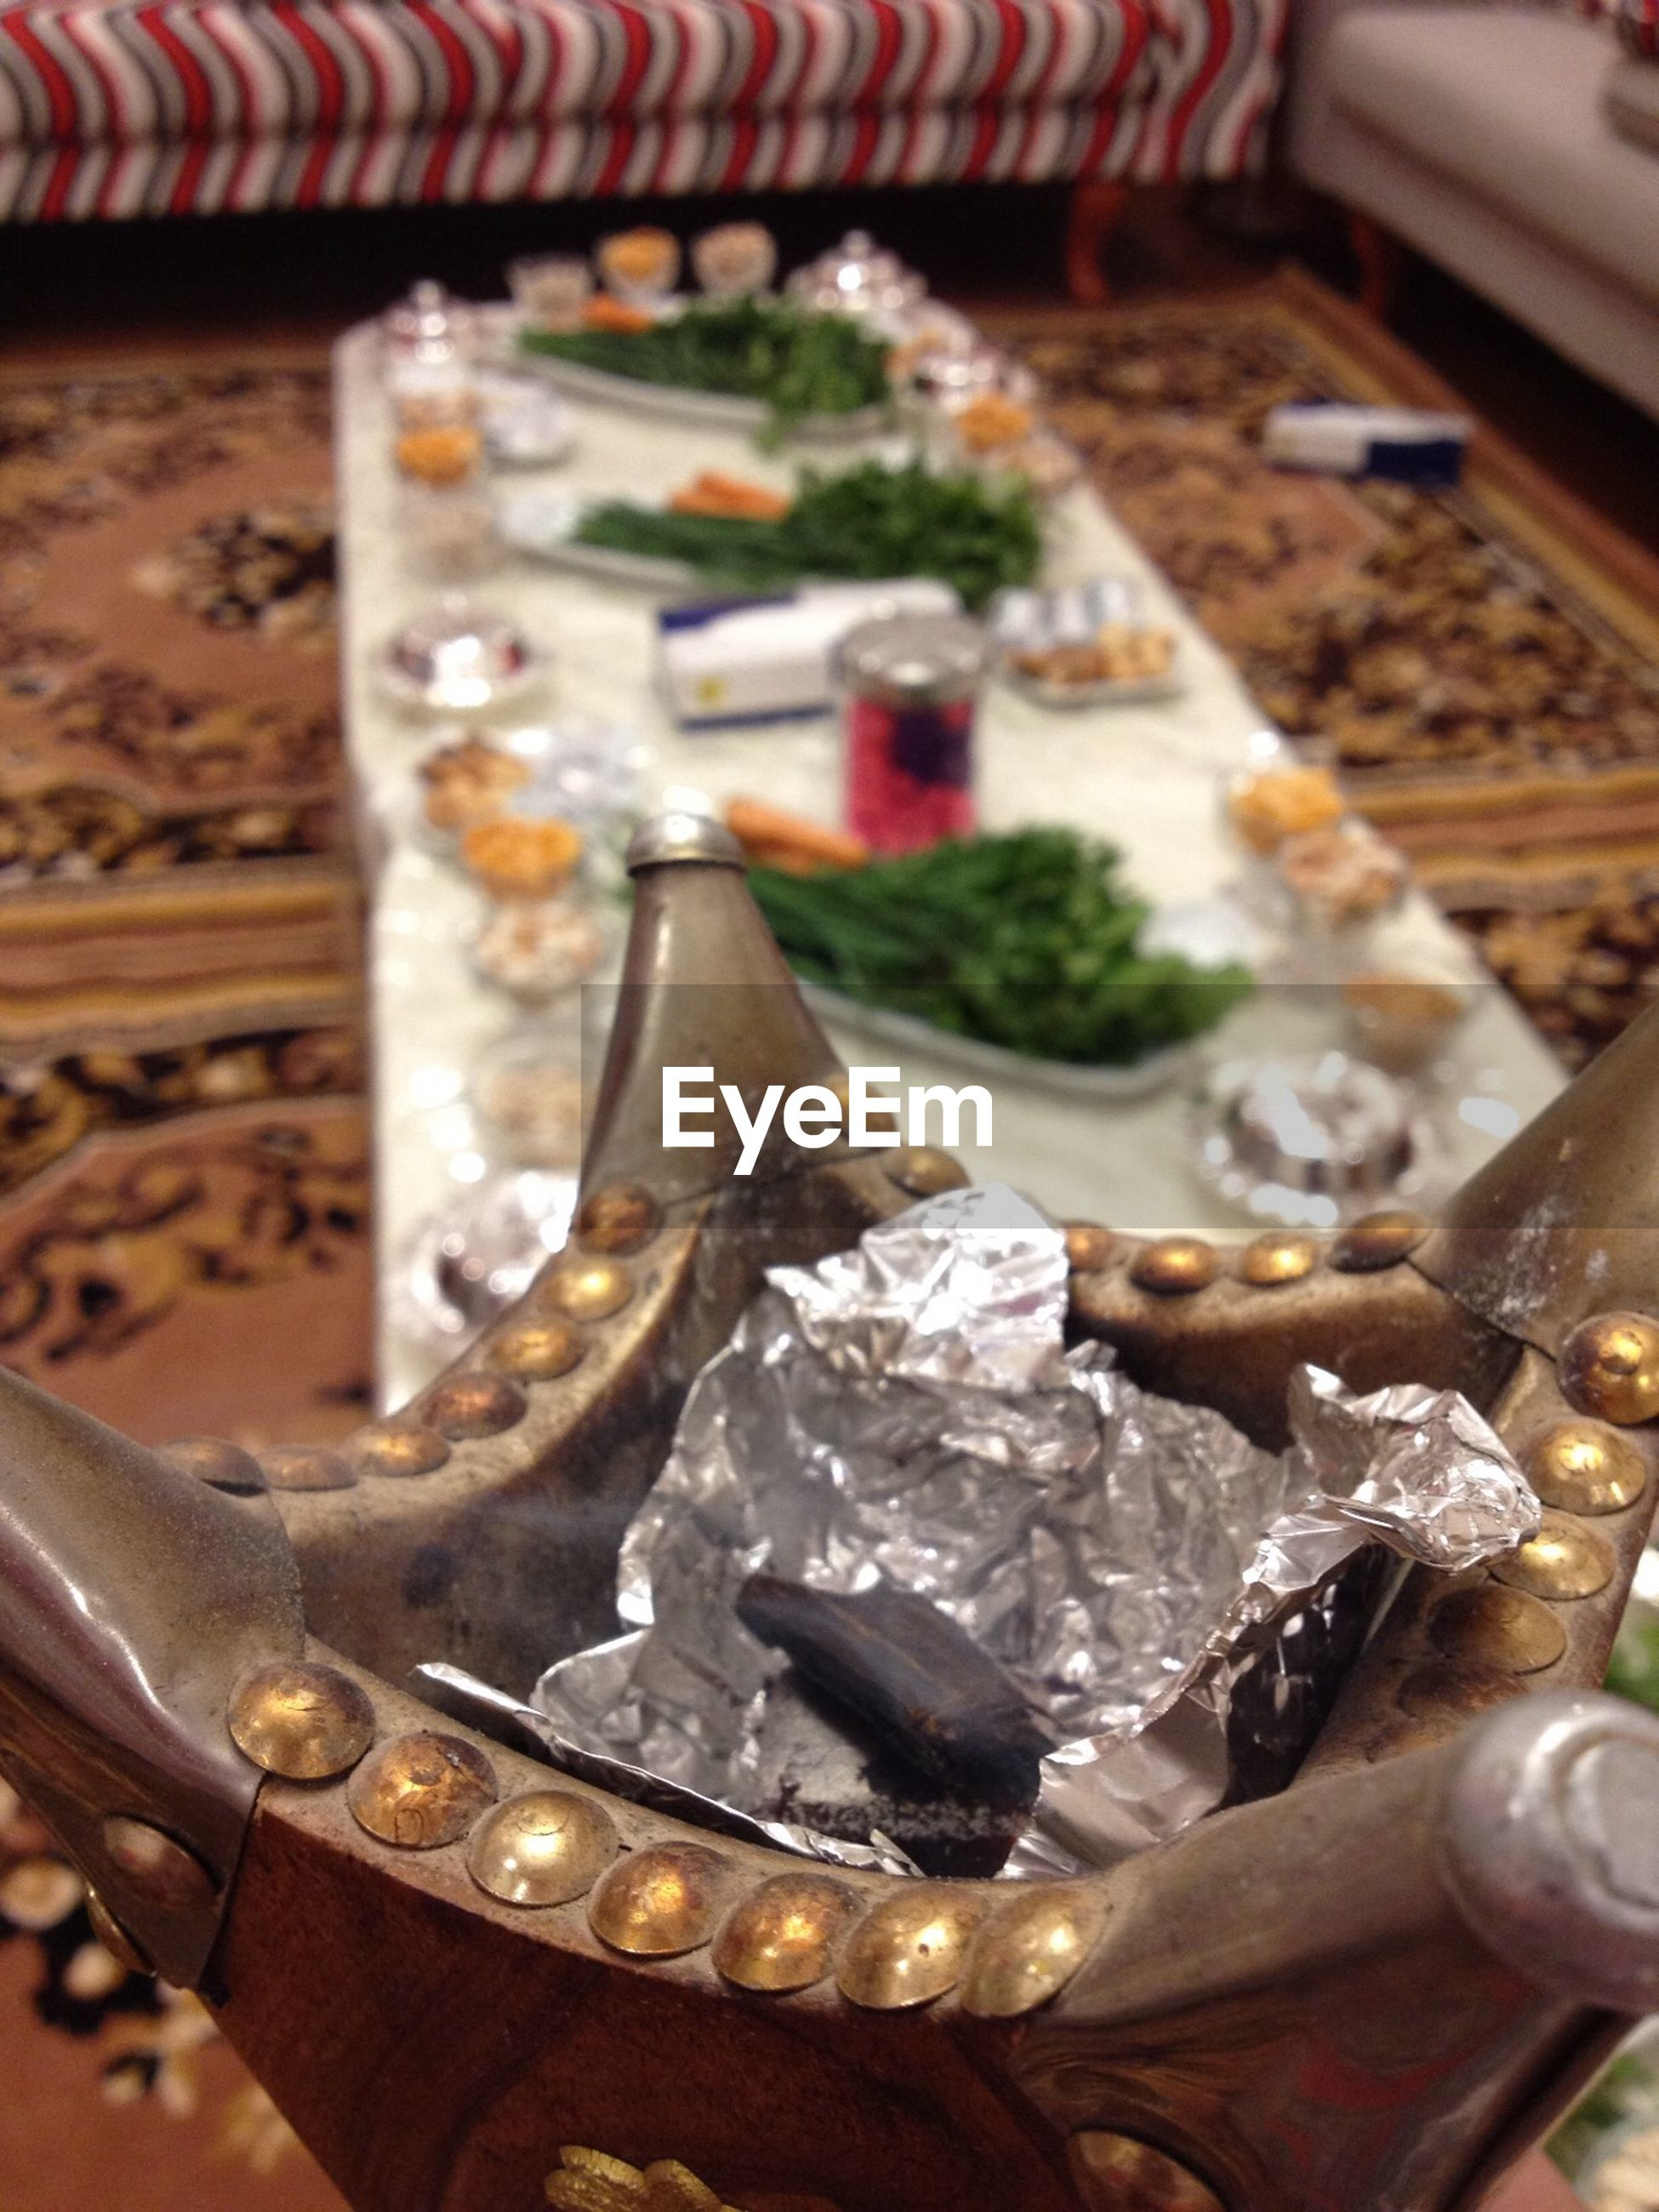 indoors, close-up, still life, metal, focus on foreground, selective focus, no people, high angle view, metallic, table, food and drink, food, day, religion, large group of objects, art and craft, cultures, old, old-fashioned, freshness